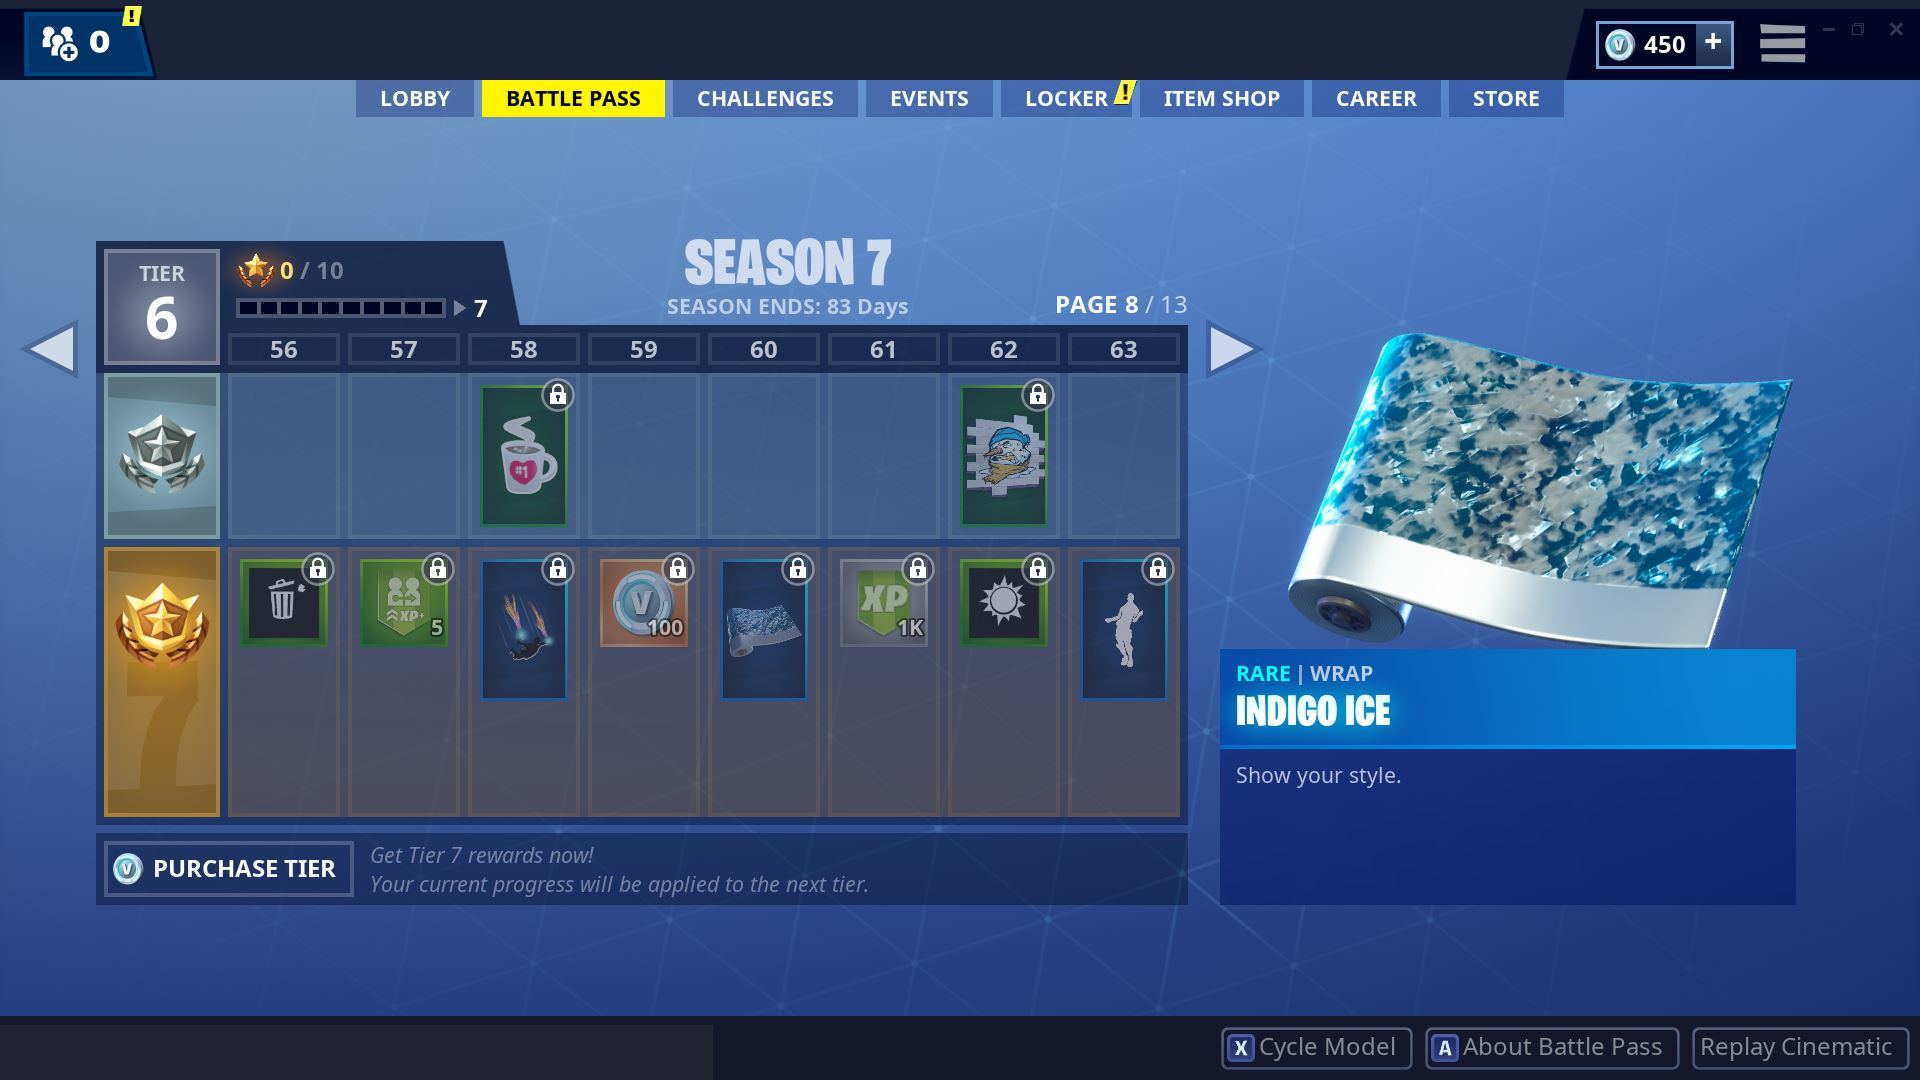 Fortnite Season 7 Battle Pass Page 8